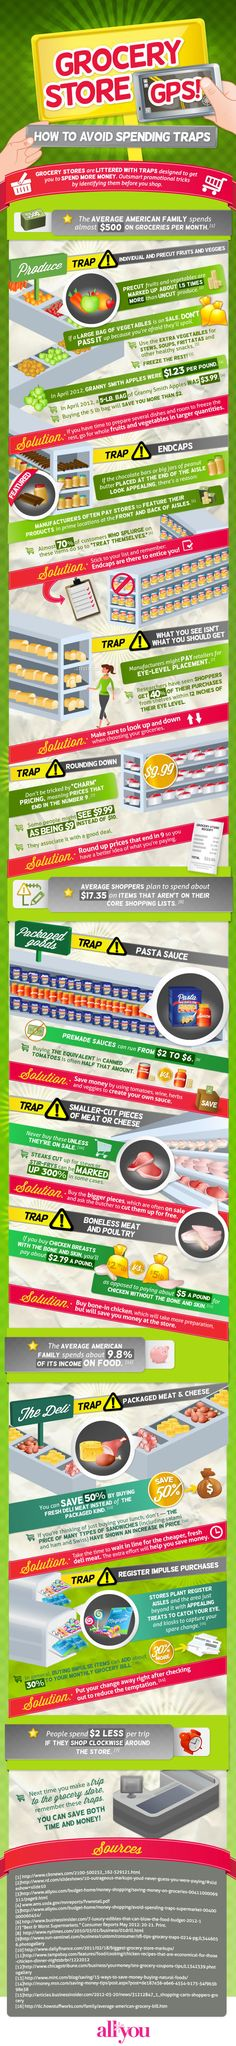 How to Save Money on Groceries- Looking for ways tosave money on groceries? Start by knowing when grocery stores are tricking you into spending more money than you intended, and adjust your shopping strategy accordingly. #infographic